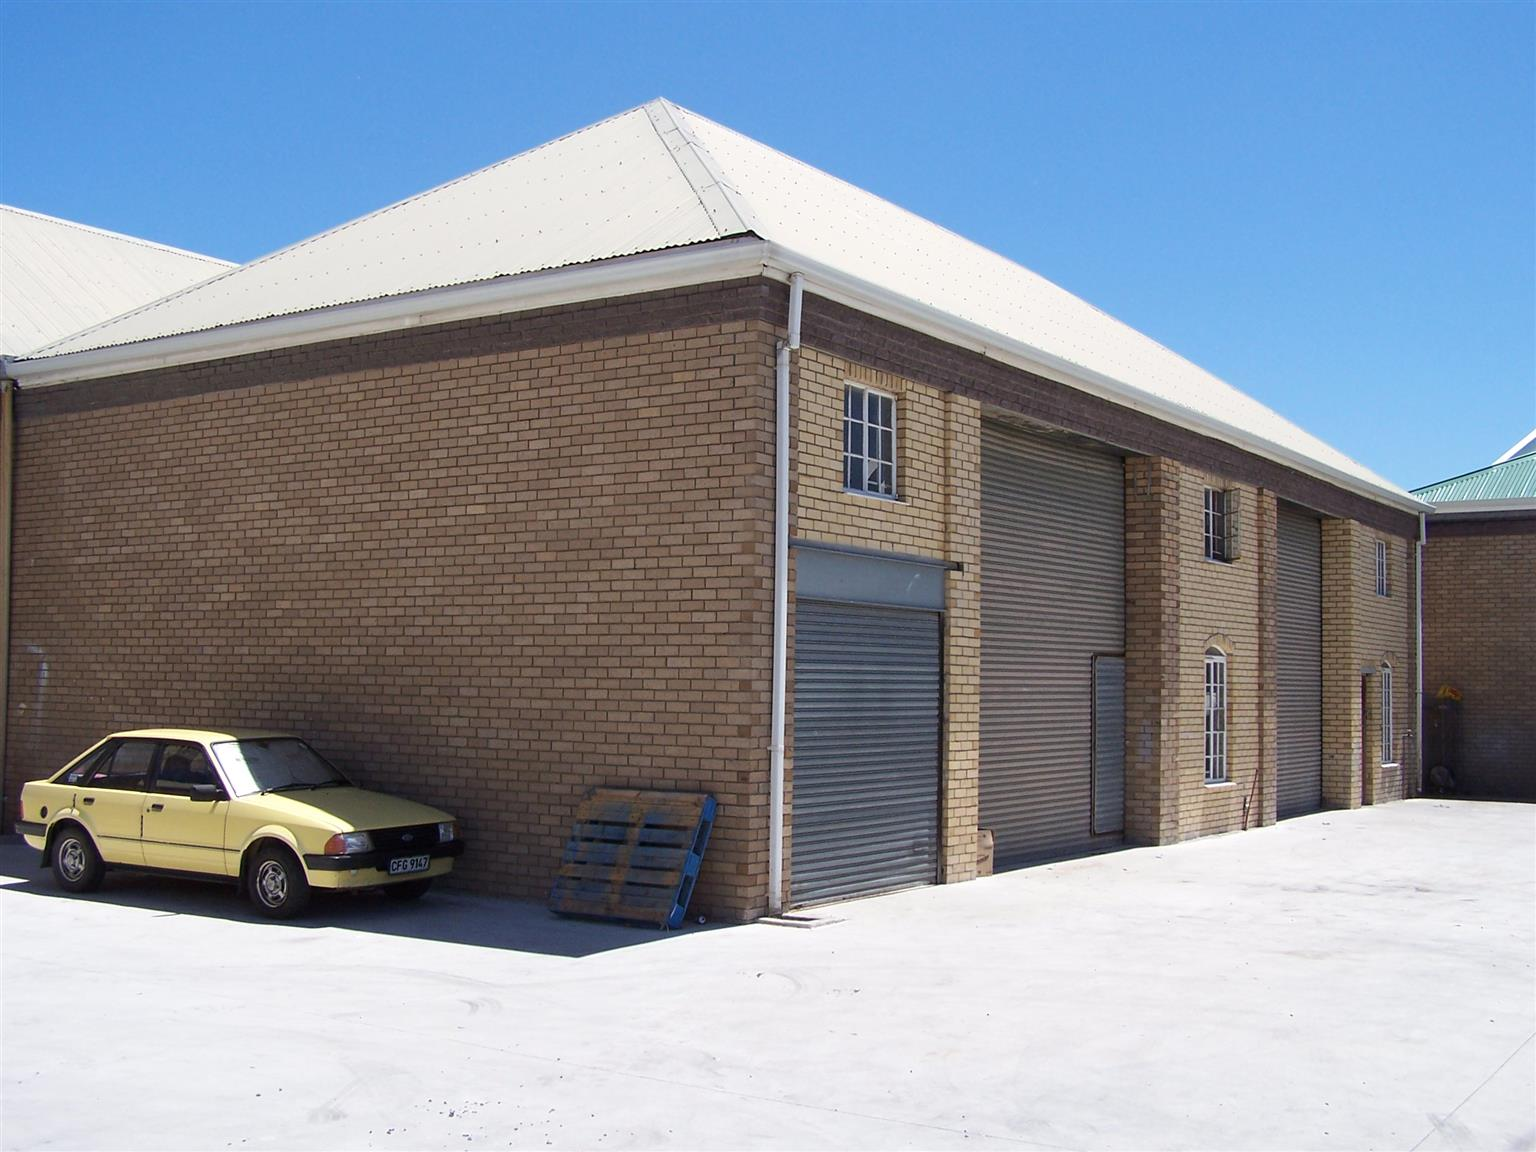 Workshop with storeroom and gallery available for rent in Montague Gardens.